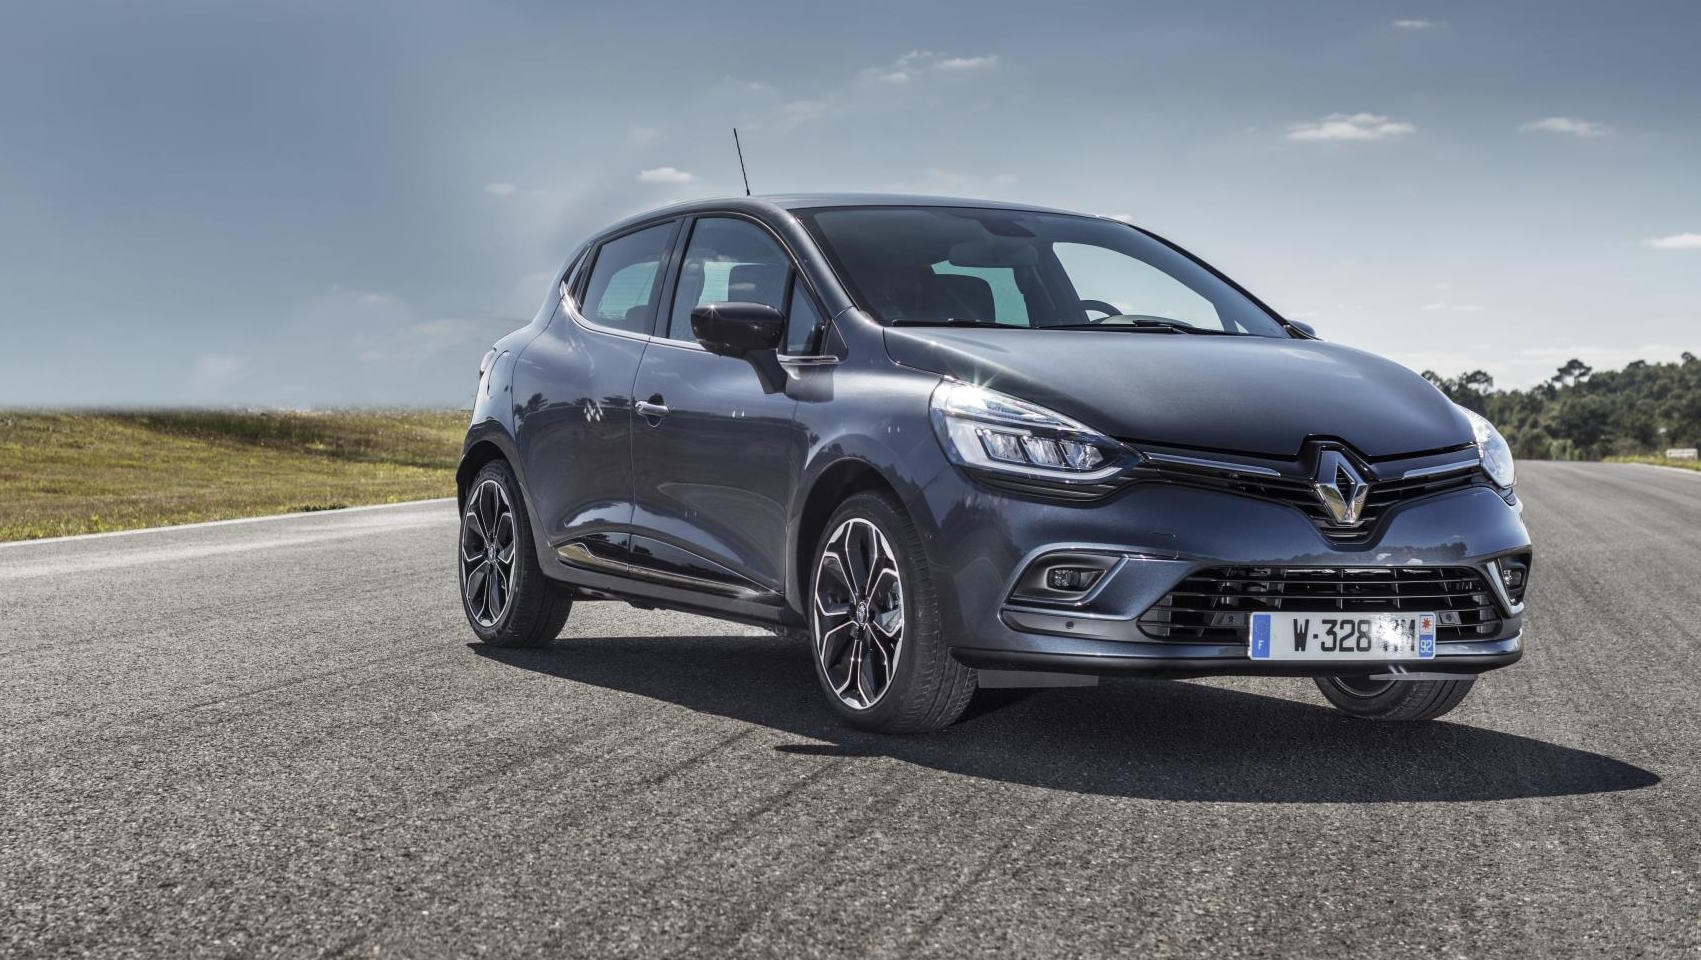 Renault Clio updated for 2017 - more tech and two new engines